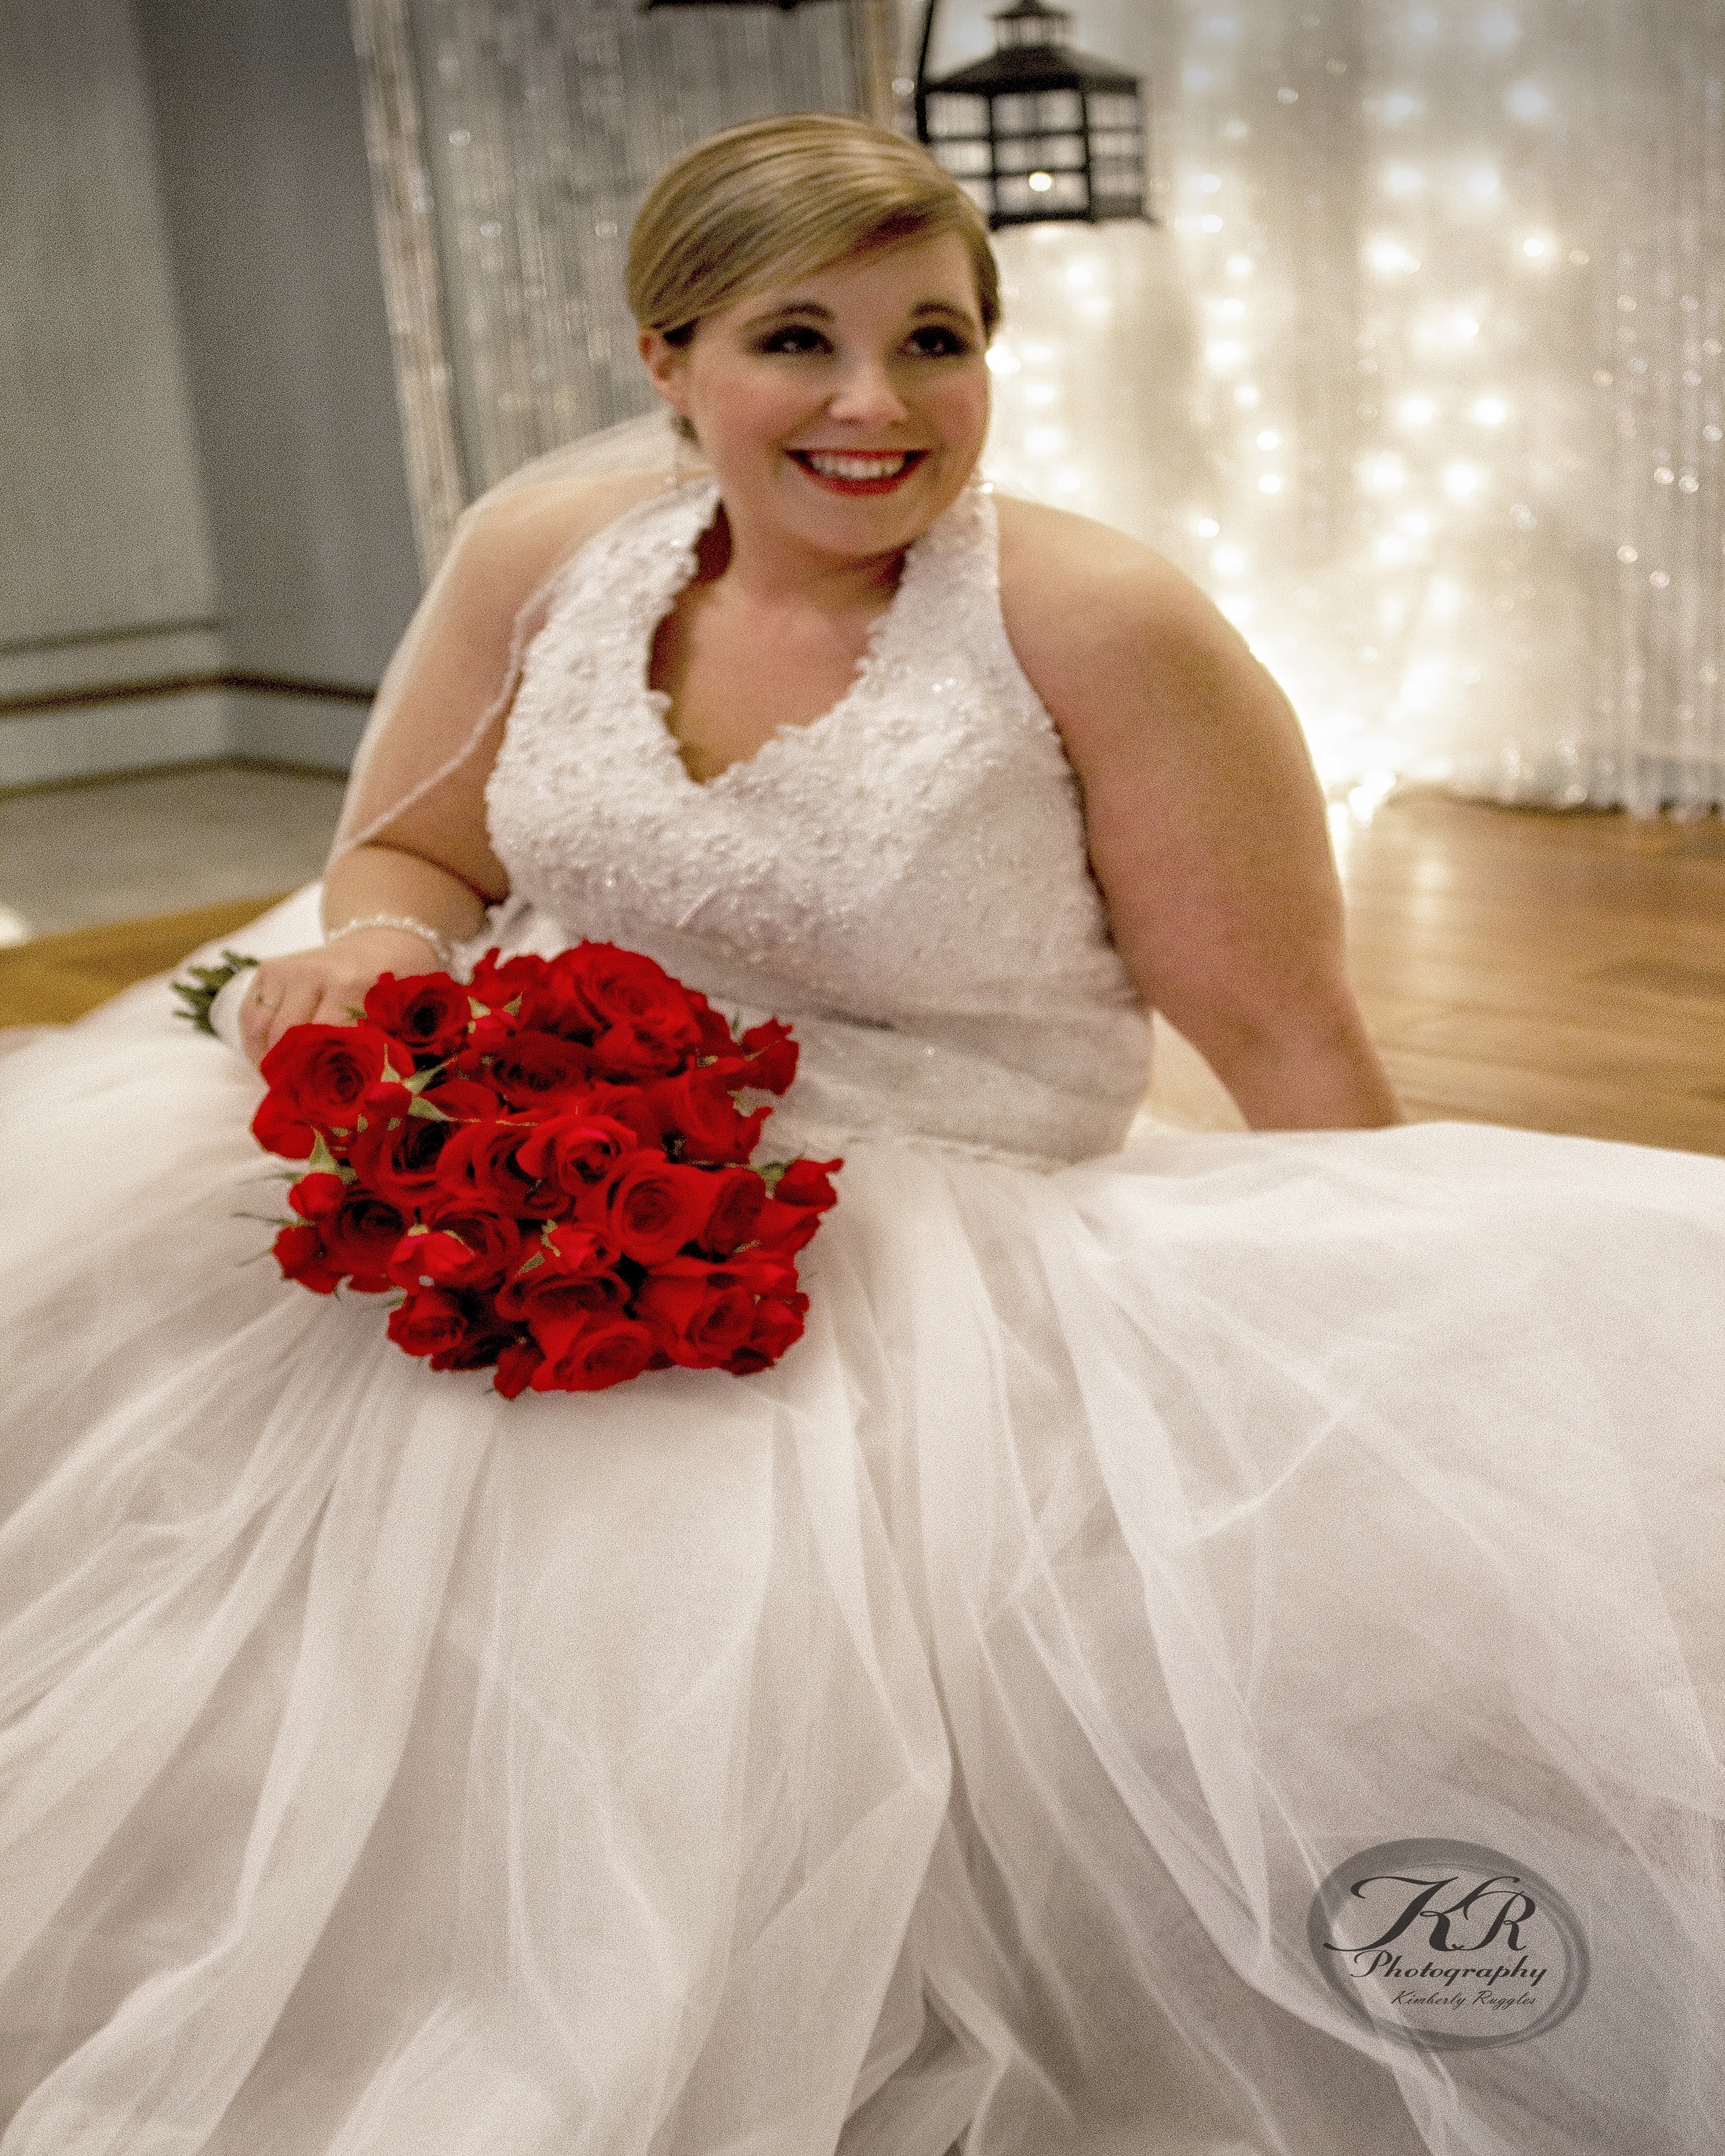 Bride at Trevitt Hall, Daltton, GA. wedding photography by KR photography cartersville, ga